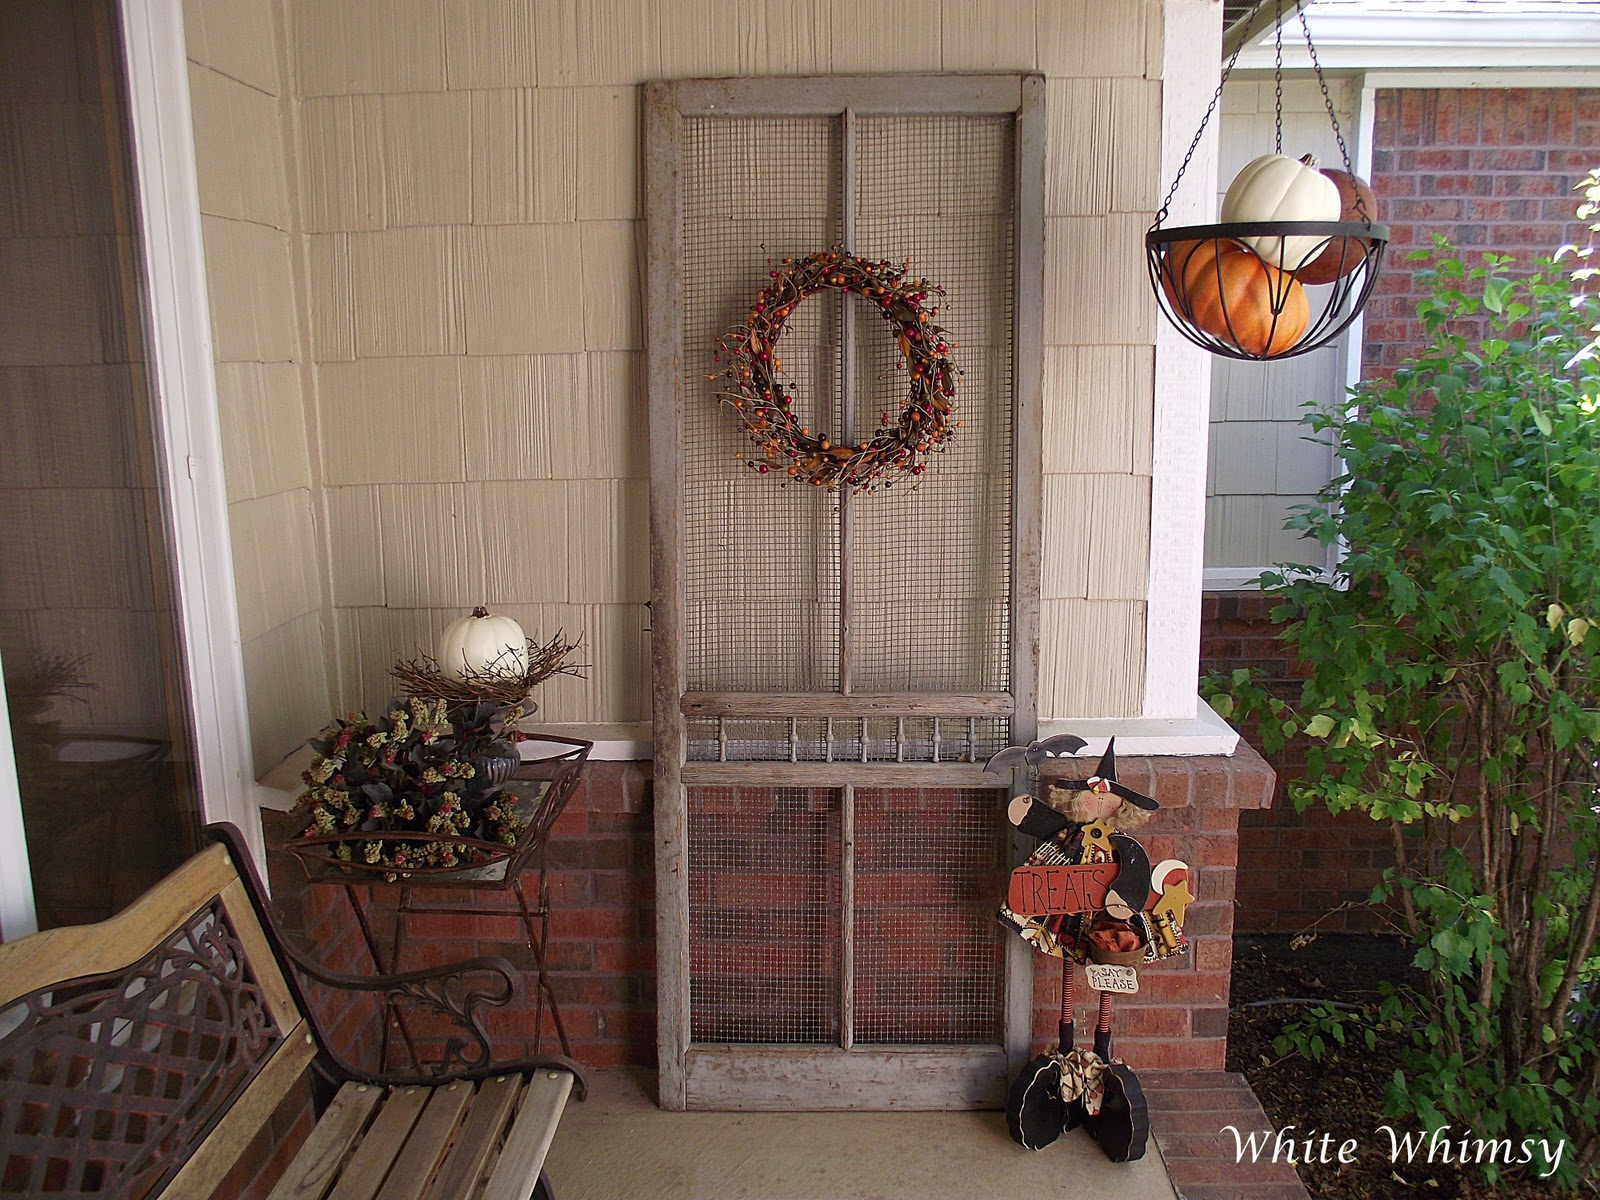 White Whimsy: An Old Screen Door On The Front Porch